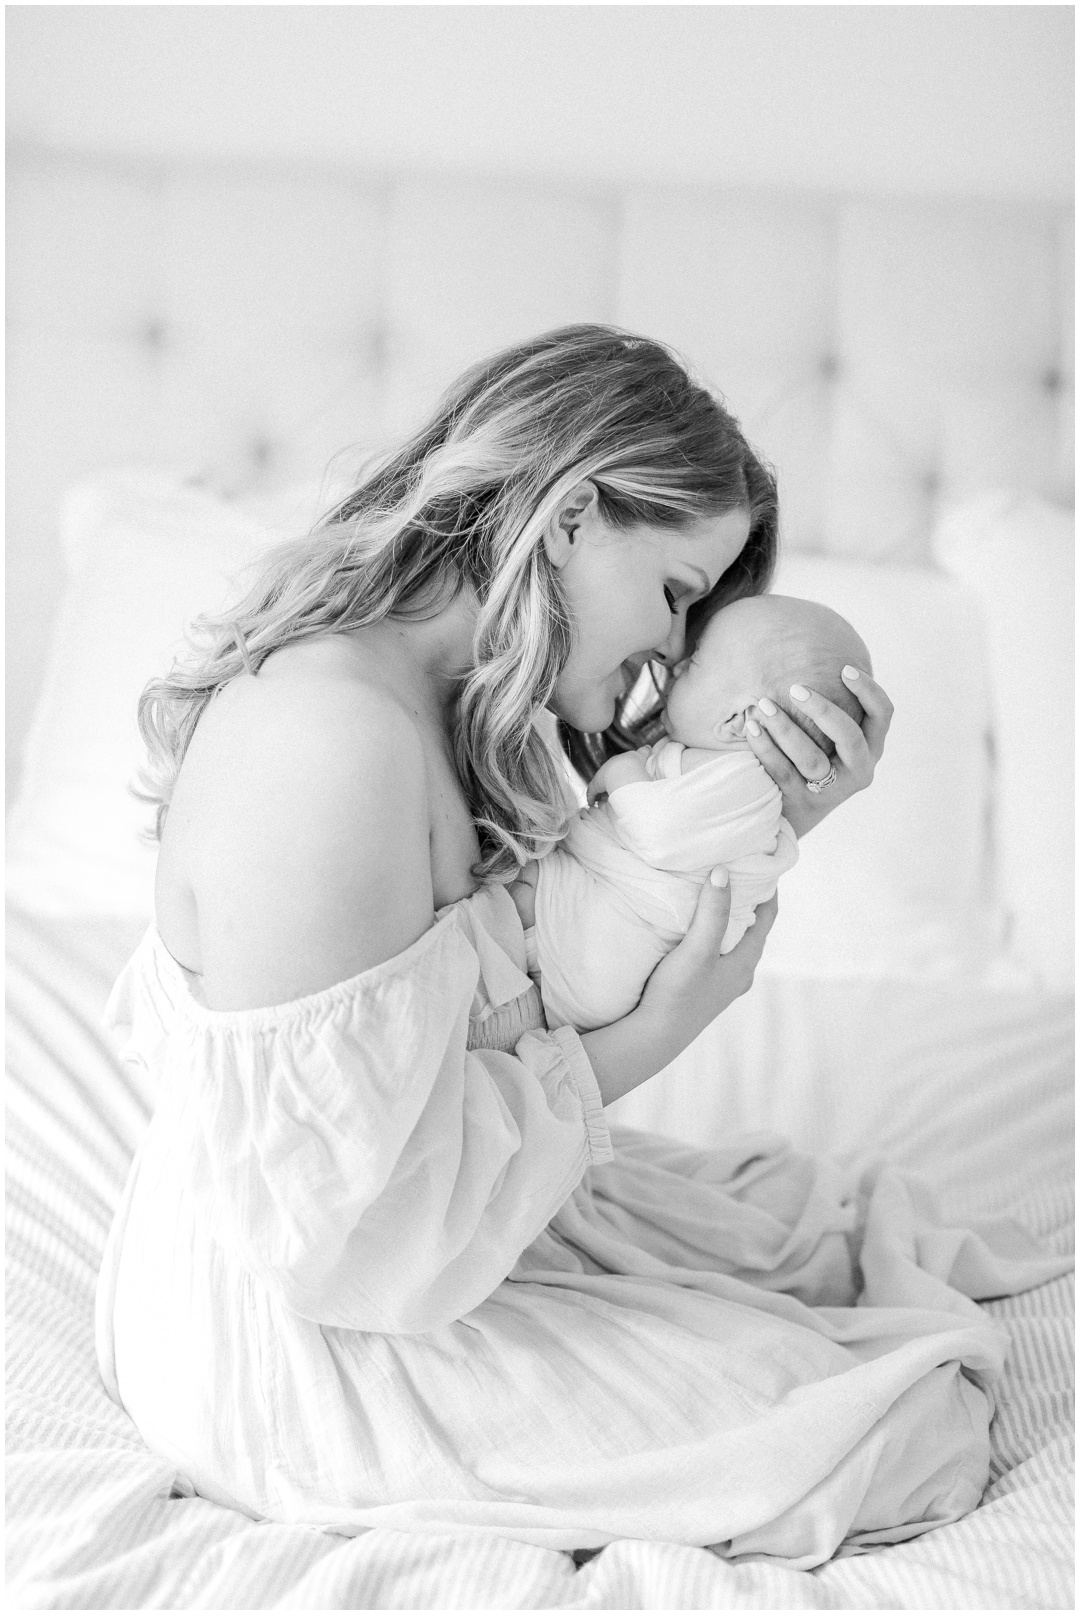 Newport_Beach_Newborn_Light_Airy_Natural_Photographer_Newport_Beach_In-Home_Photographer_Orange_County_Family_Photographer_Cori_Kleckner_Photography_Huntington_Beach_Photographer_Family_OC_Newborn_Meghan_Sullivan_Newborn_Family_Greer_Sullivan_3257.jpg